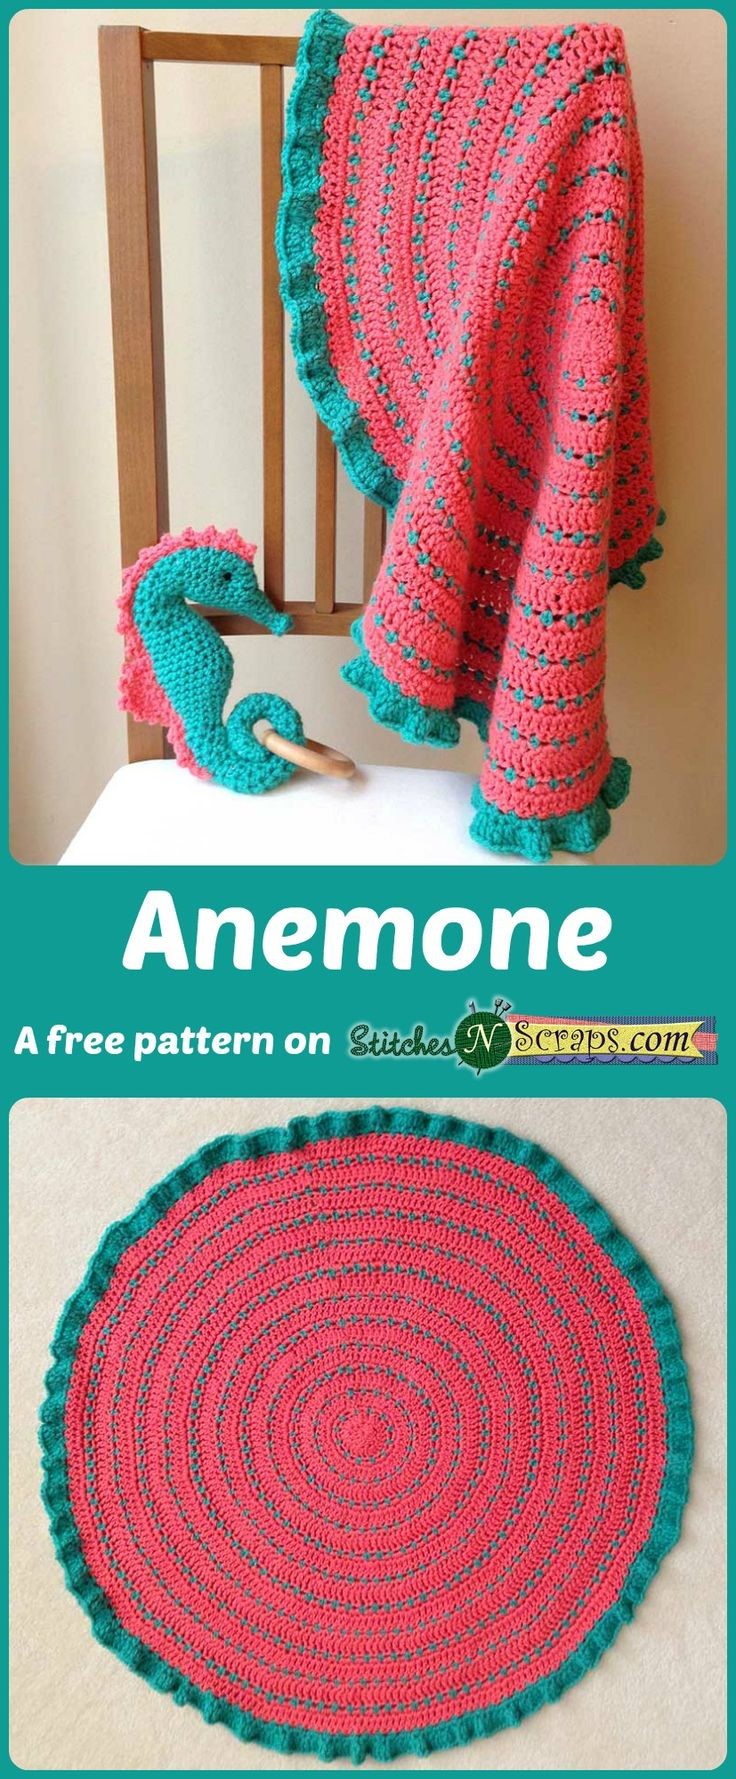 250 best cute cuddly baby blankets images on pinterest tutorial anemone security blanket a free pattern on stitchesnscraps 1 skein of baby hugs web patternsafghan patternscrochet bankloansurffo Choice Image